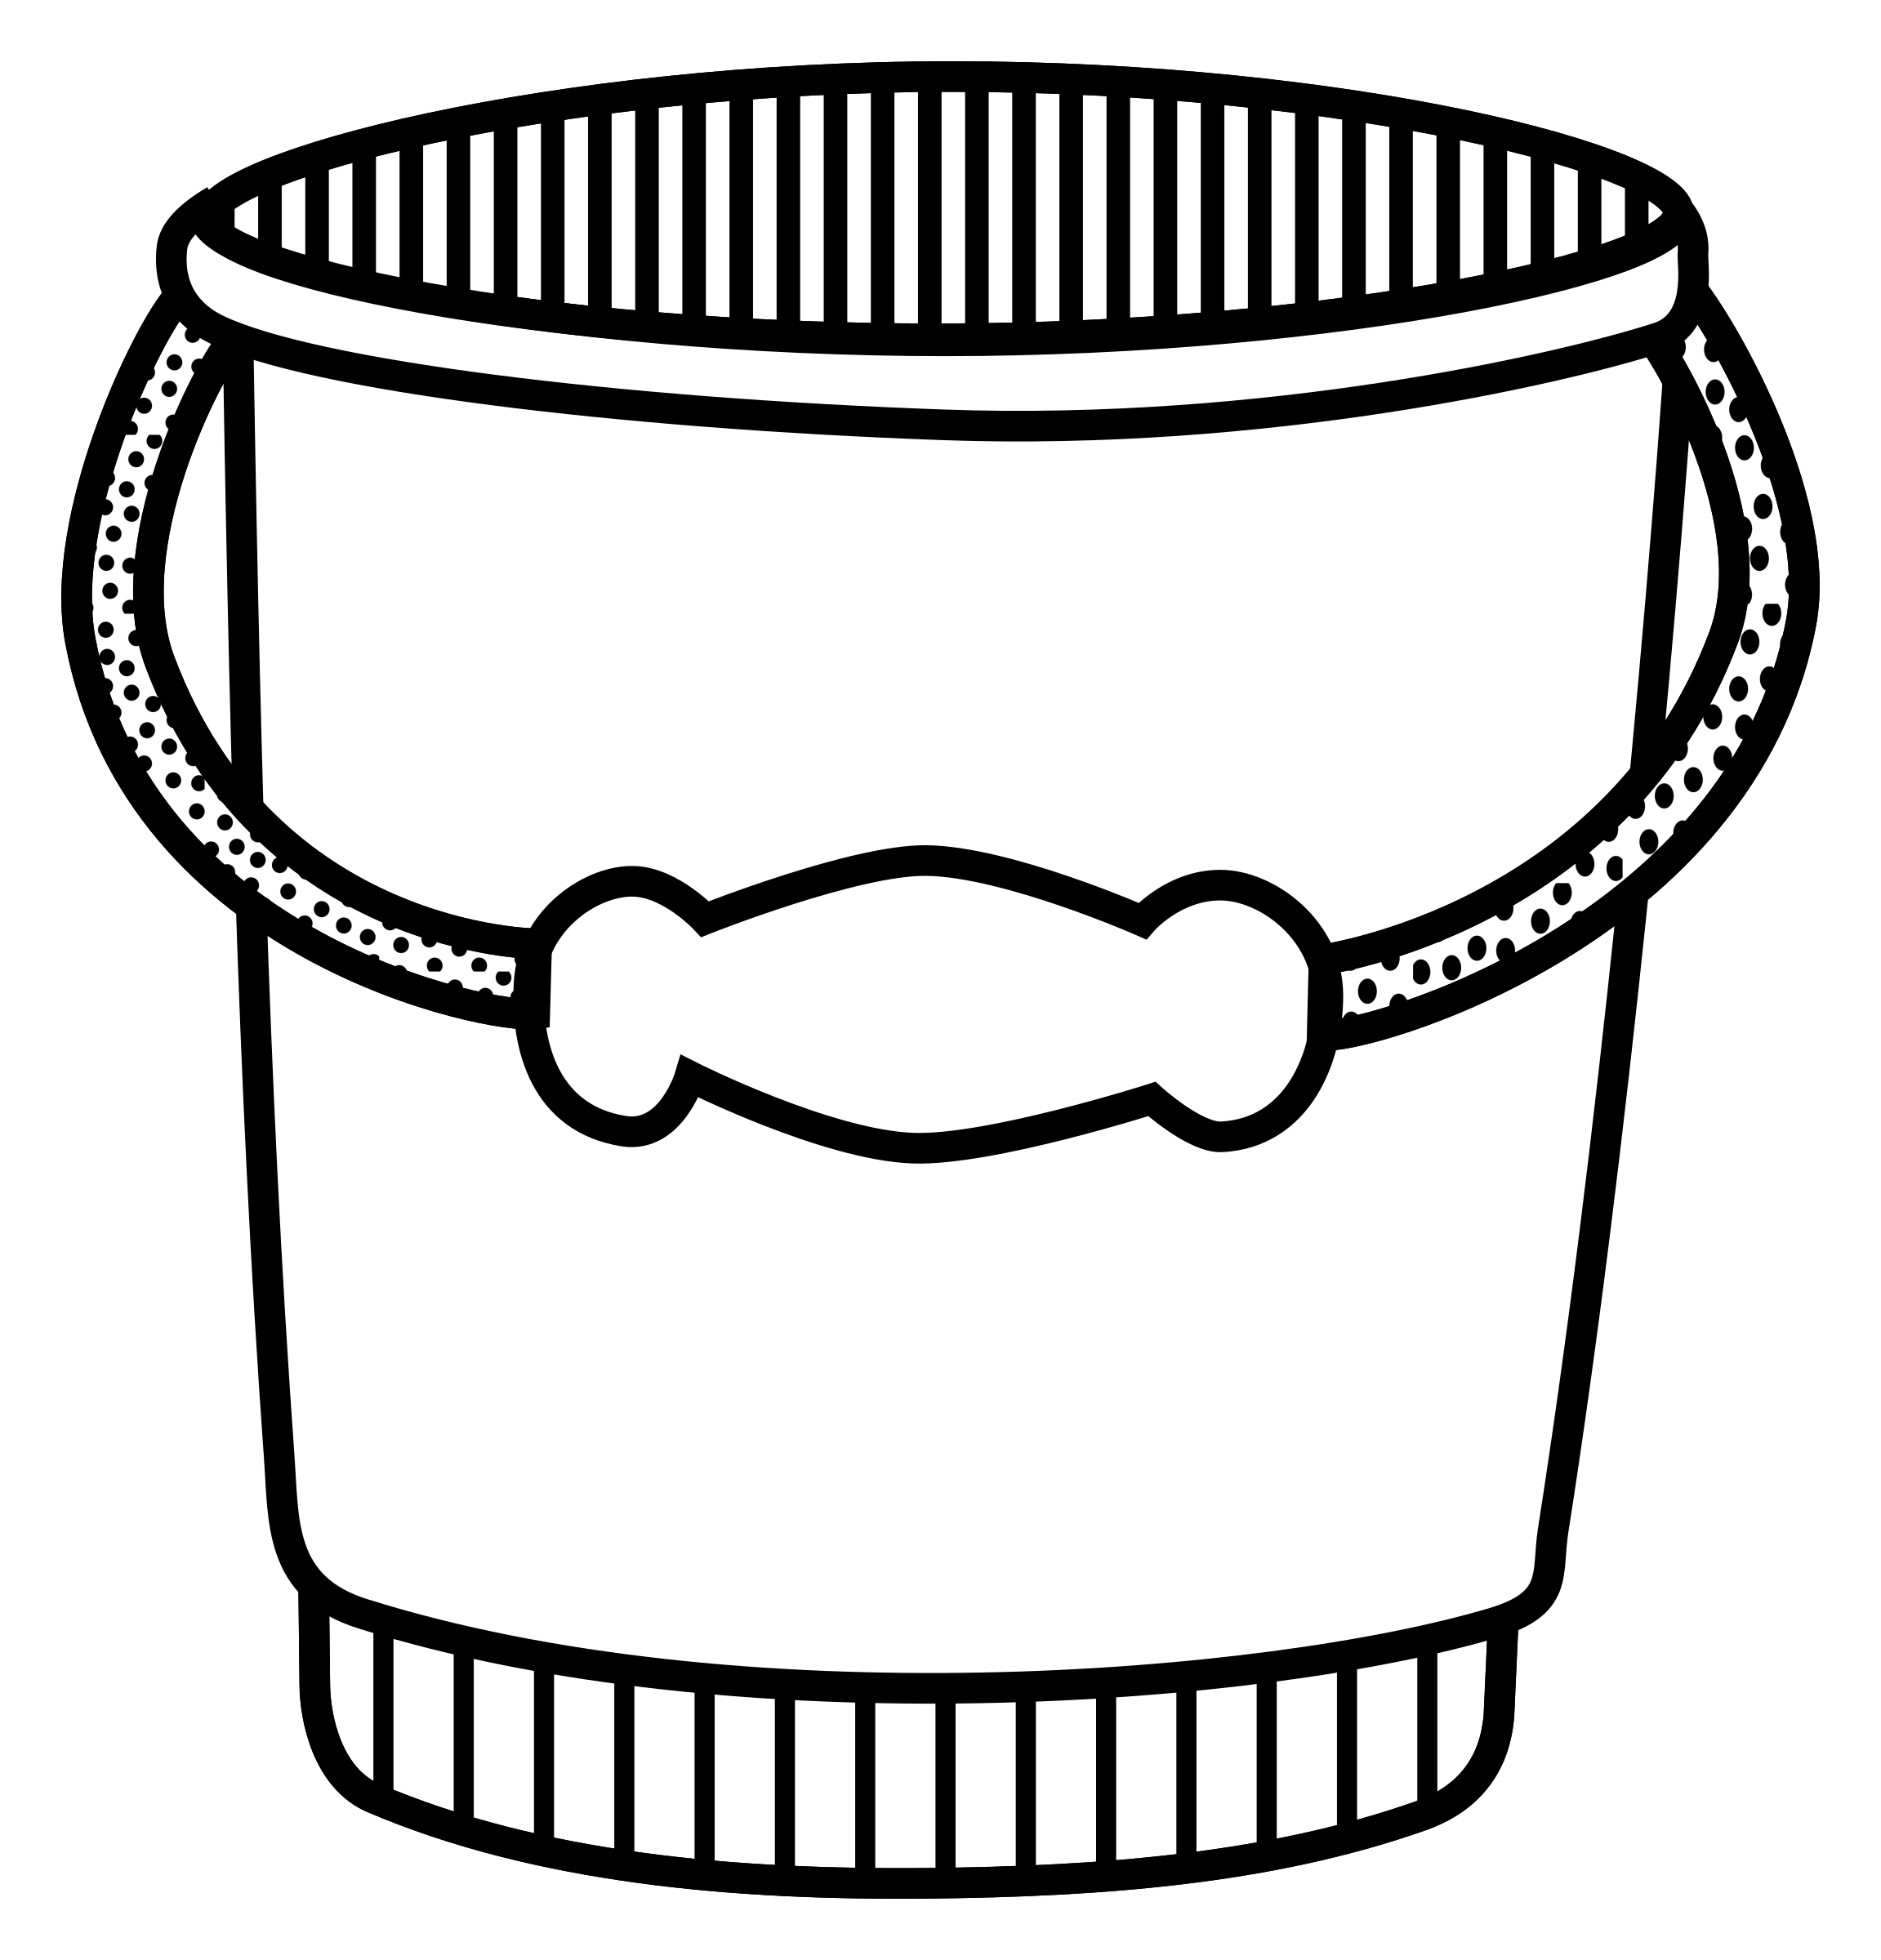 Book bucket clipart image freeuse download T-shirt Drawing Clip art - bucket clipart 2303*2400 transprent Png ... image freeuse download